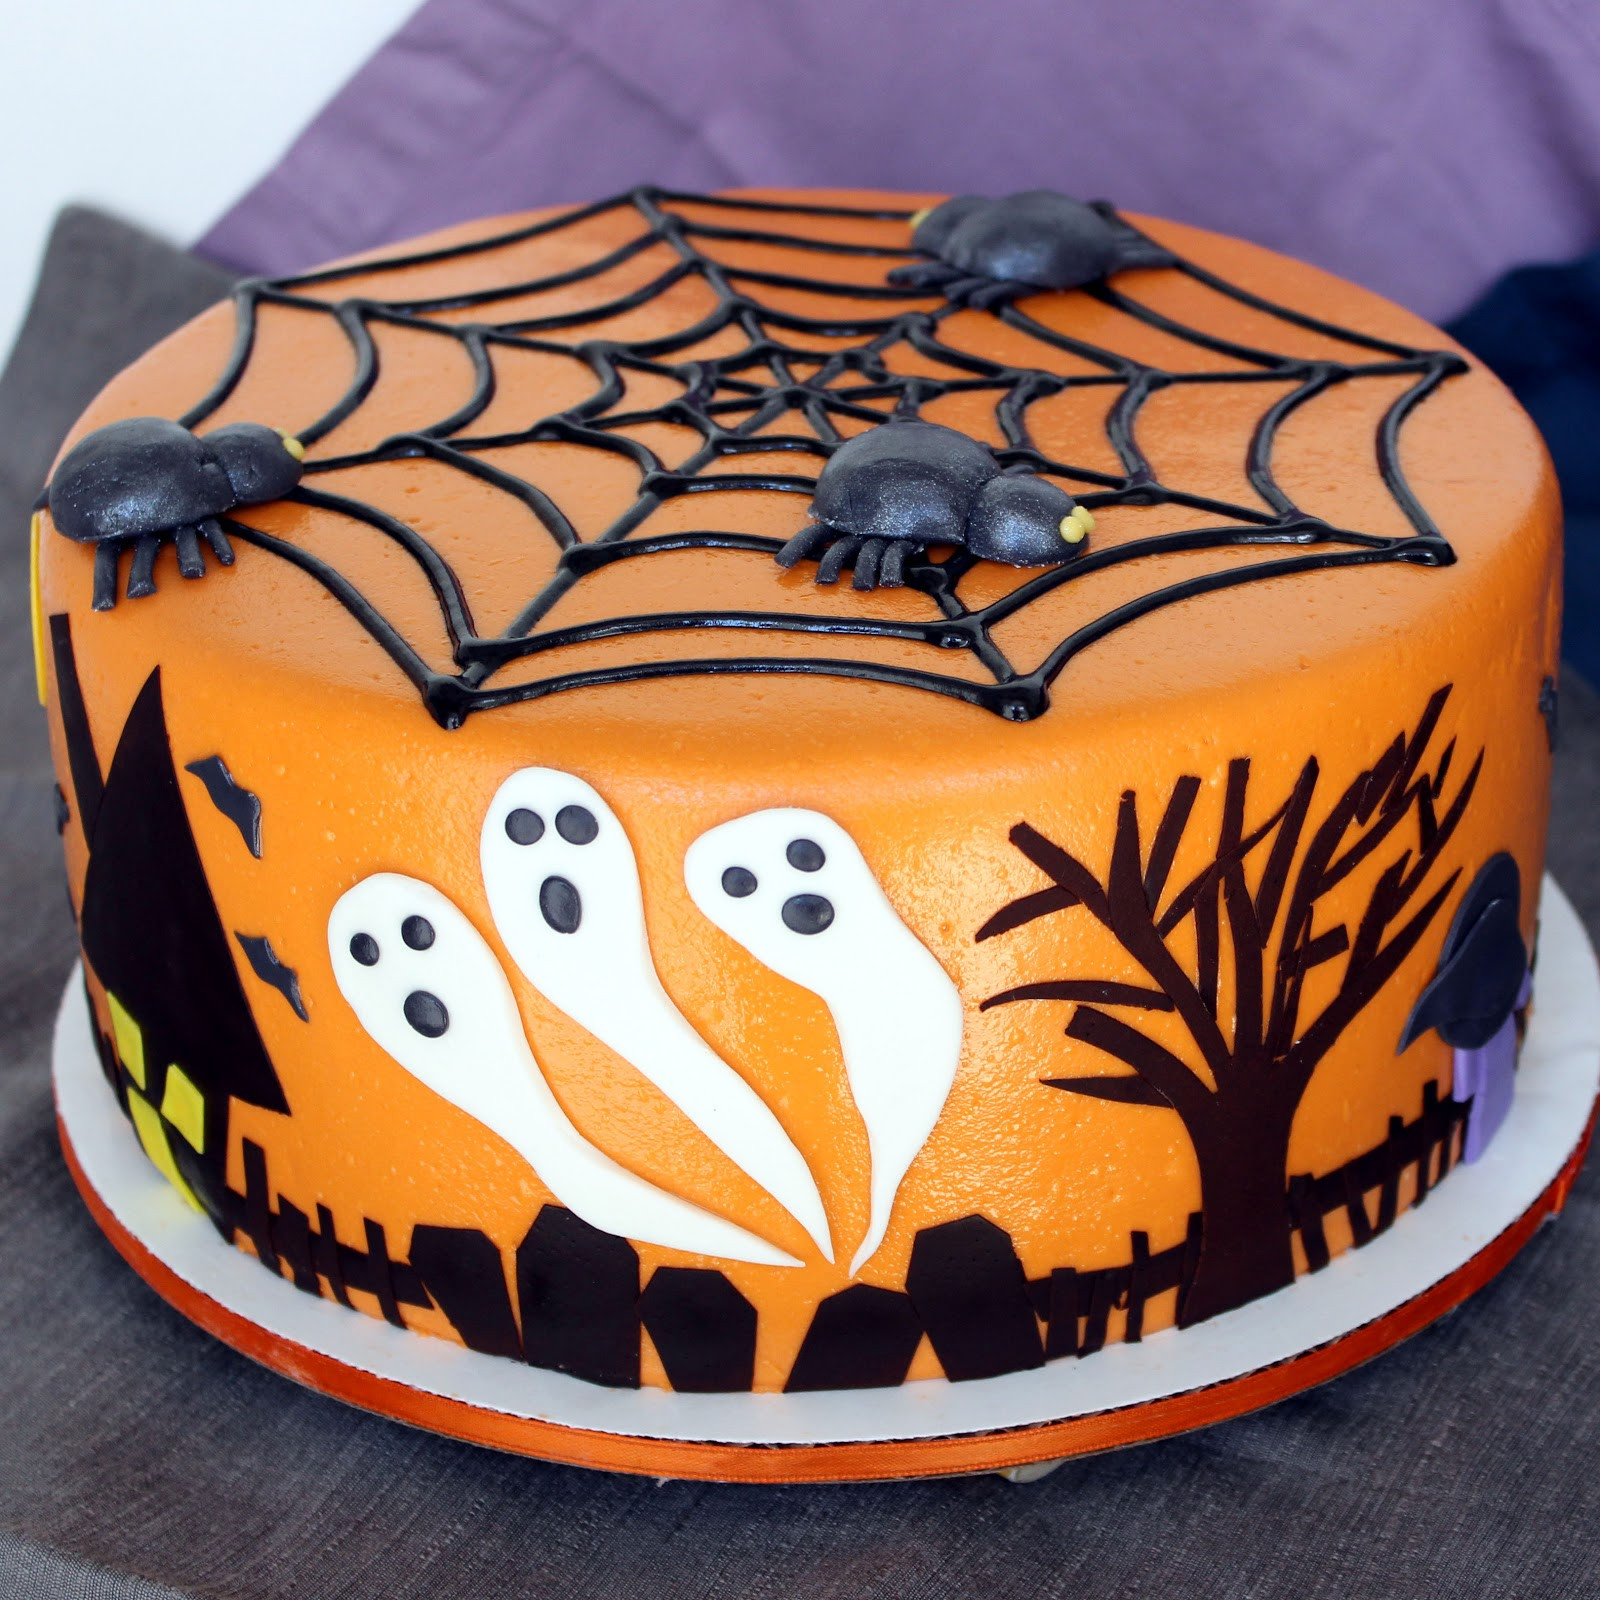 Halloween Cakes Decorations Ideas  Halloween Cake Ideas The Xerxes